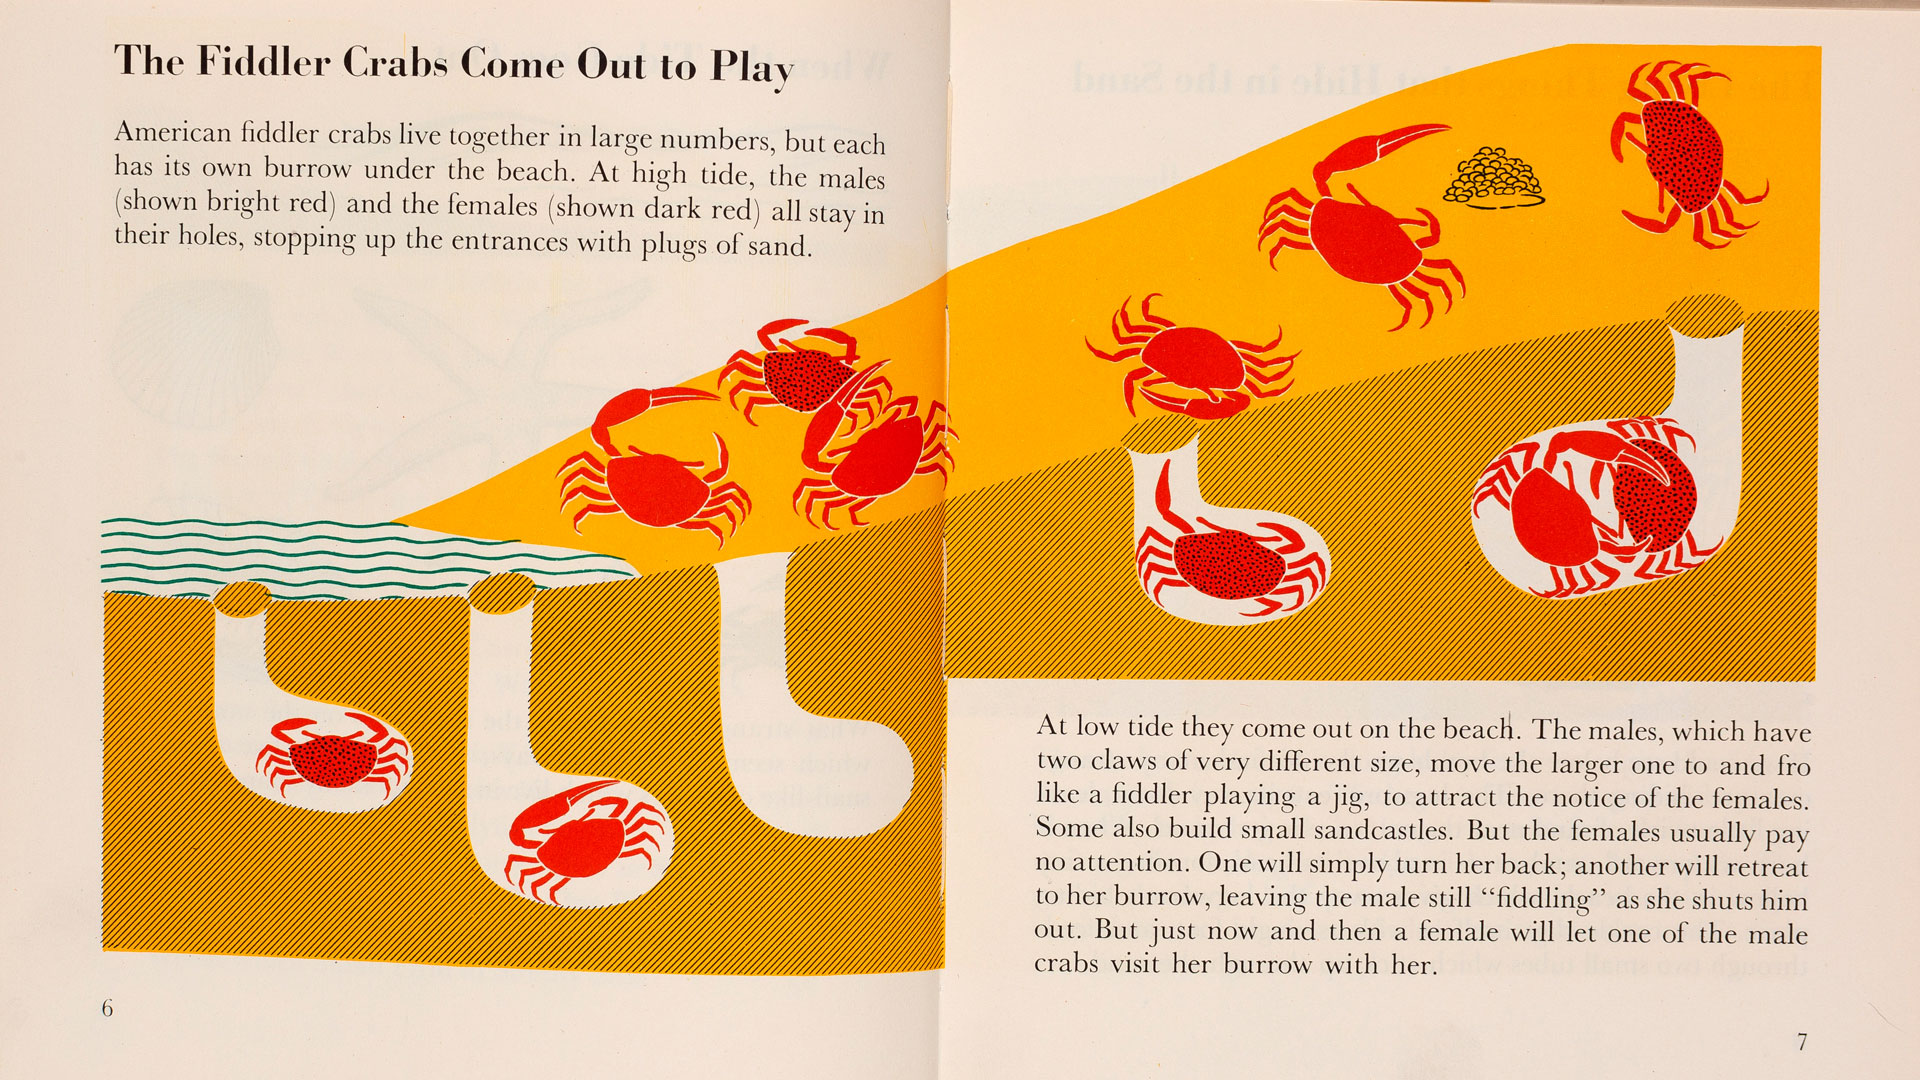 How Marie Neurath used illustration to help children understand science